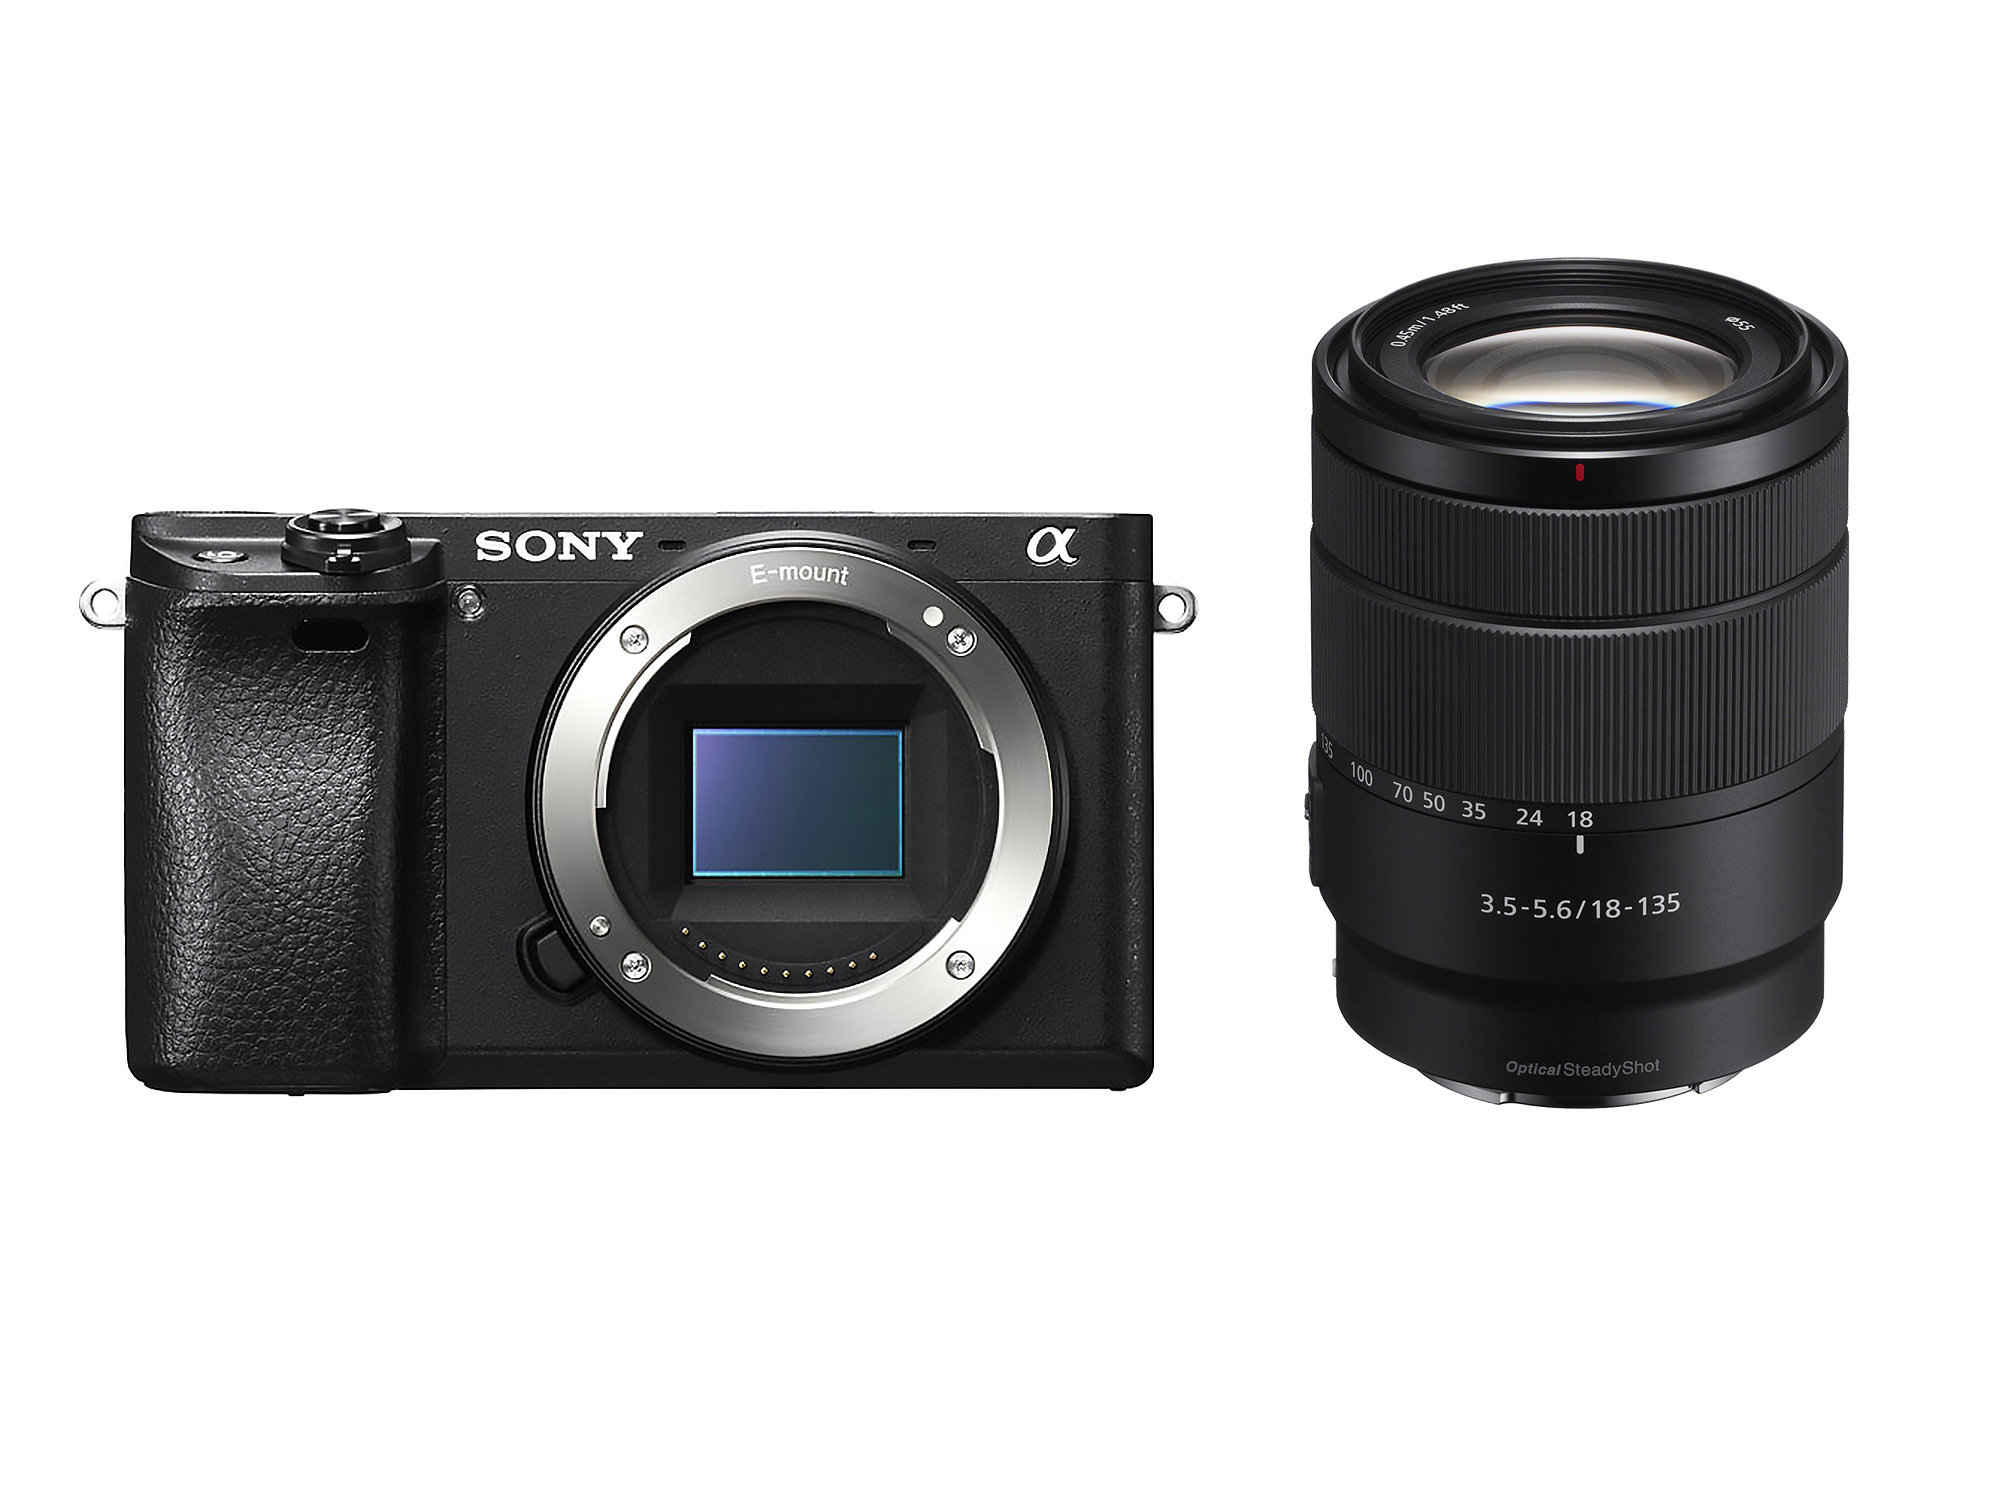 Sony Alpha a6300 + 18-135mm Lens Kit